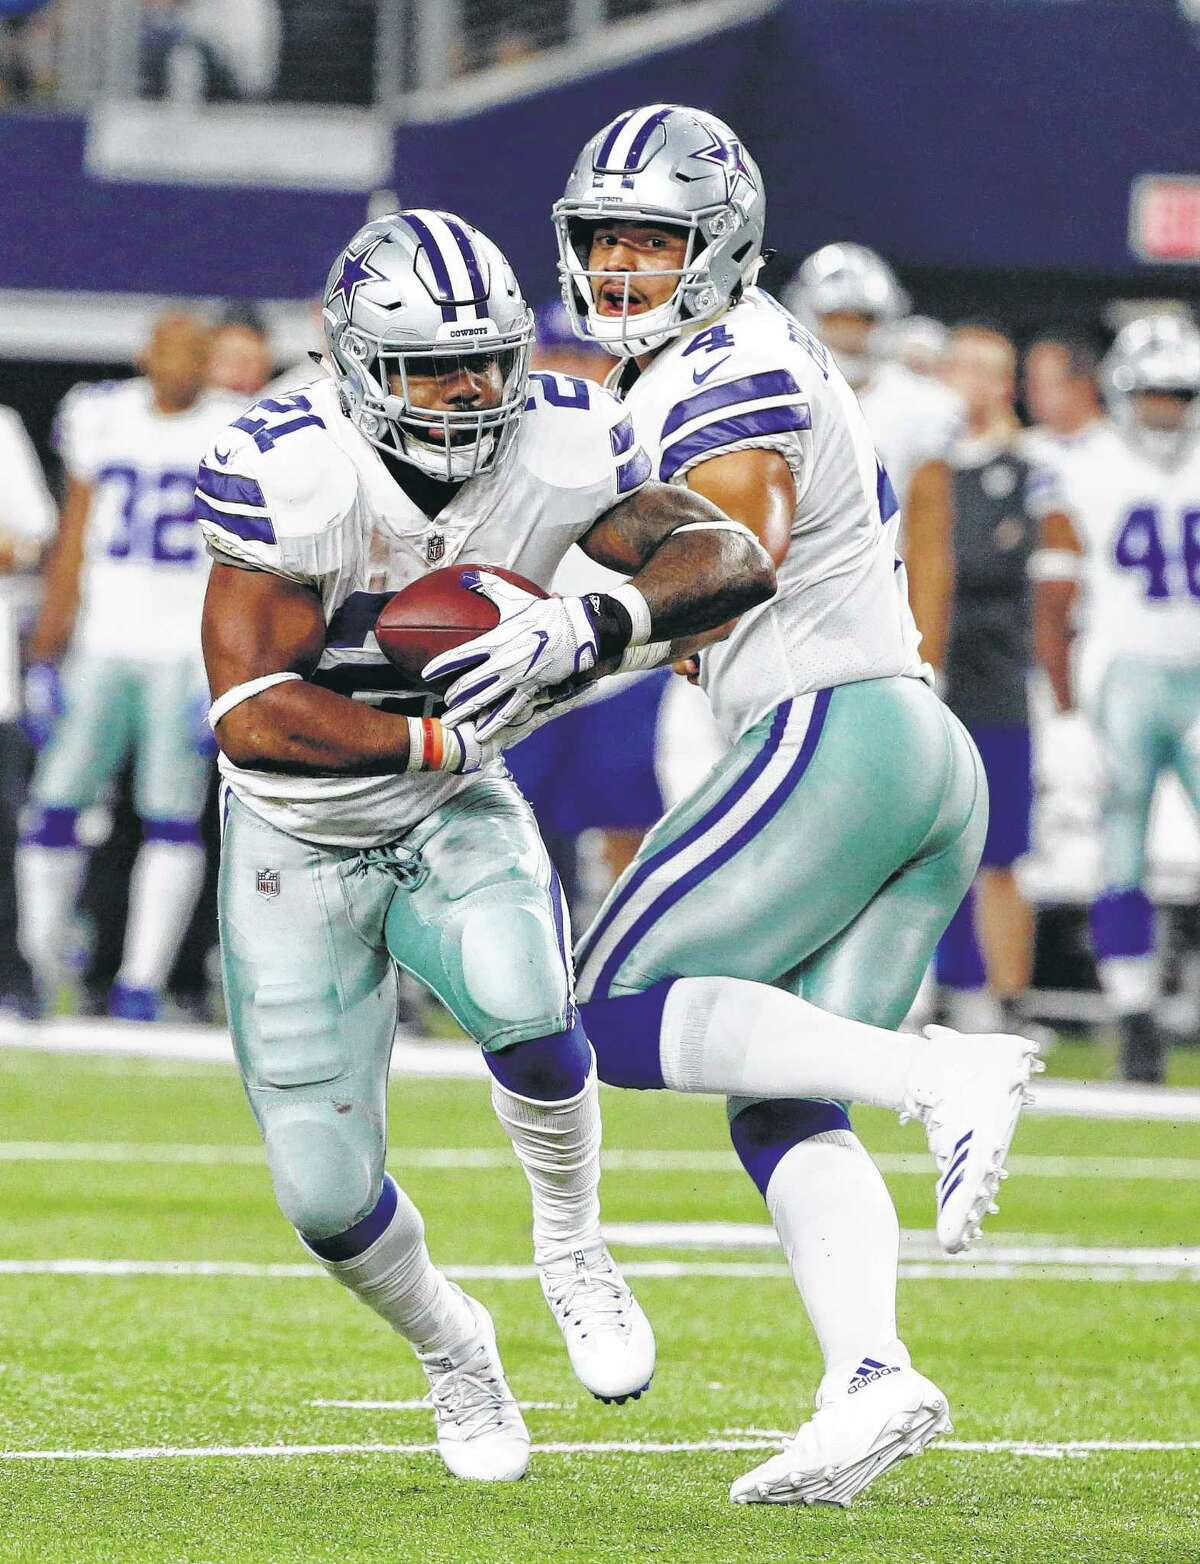 Dallas Cowboys running back Ezekiel Elliott (21) takes the hand off from quarterback Dak Prescott (4) in the first half of an NFL football game against the New York Giants on Sunday, Sept. 10, 2017, in Arlington, Texas. (AP Photo/Michael Ainsworth)